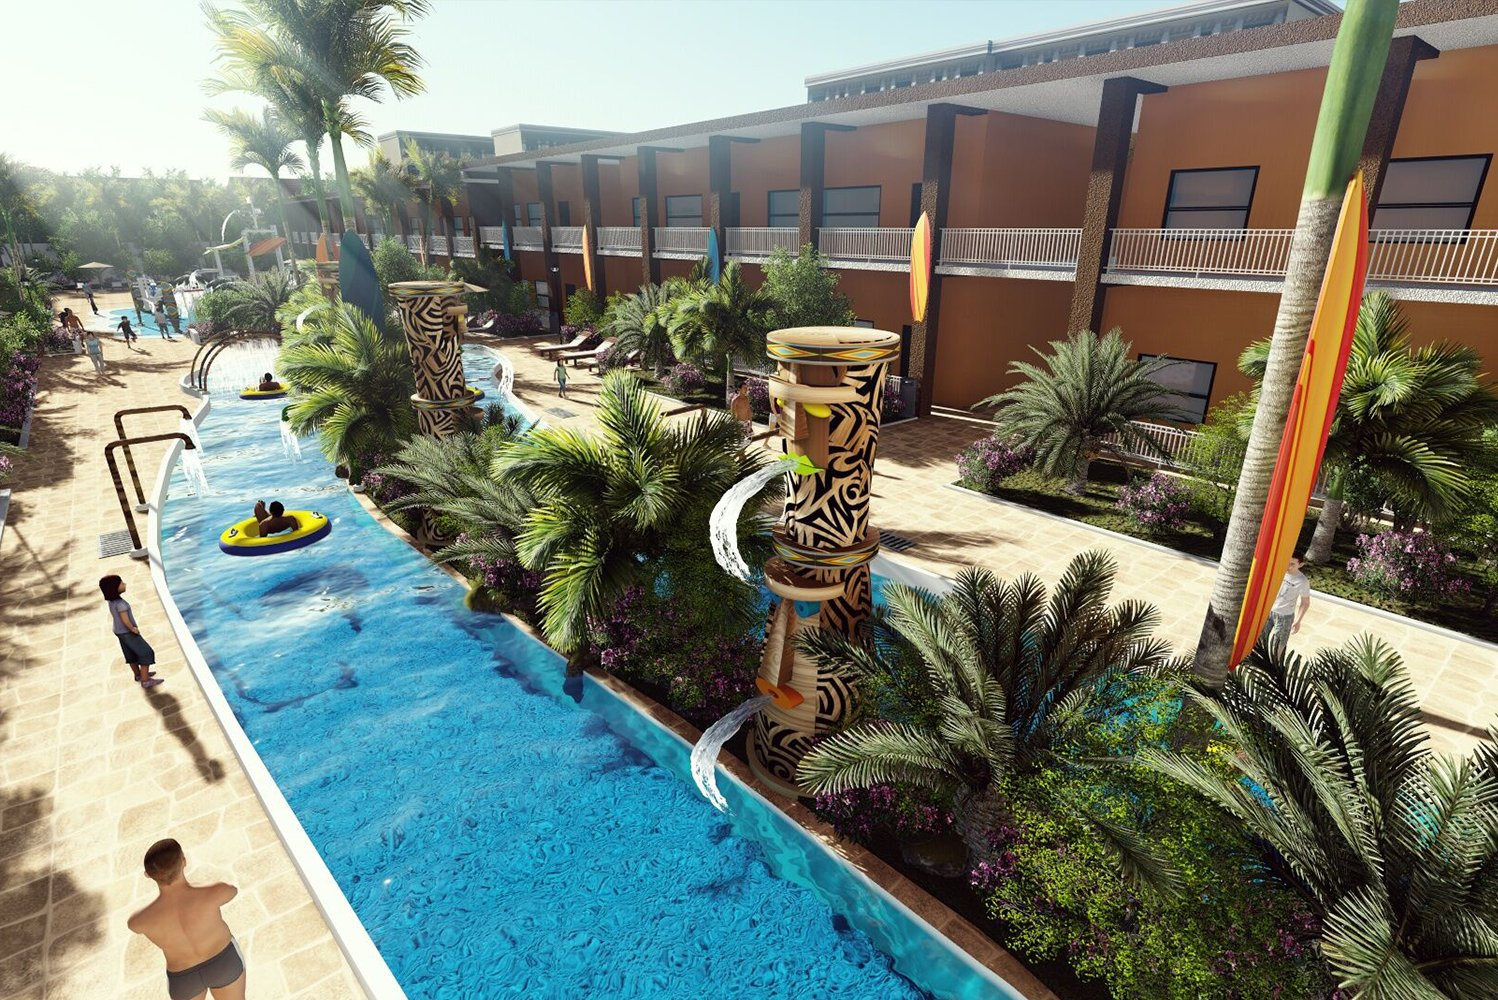 The waterpark will have tropical landscaping and surfing themed décor.